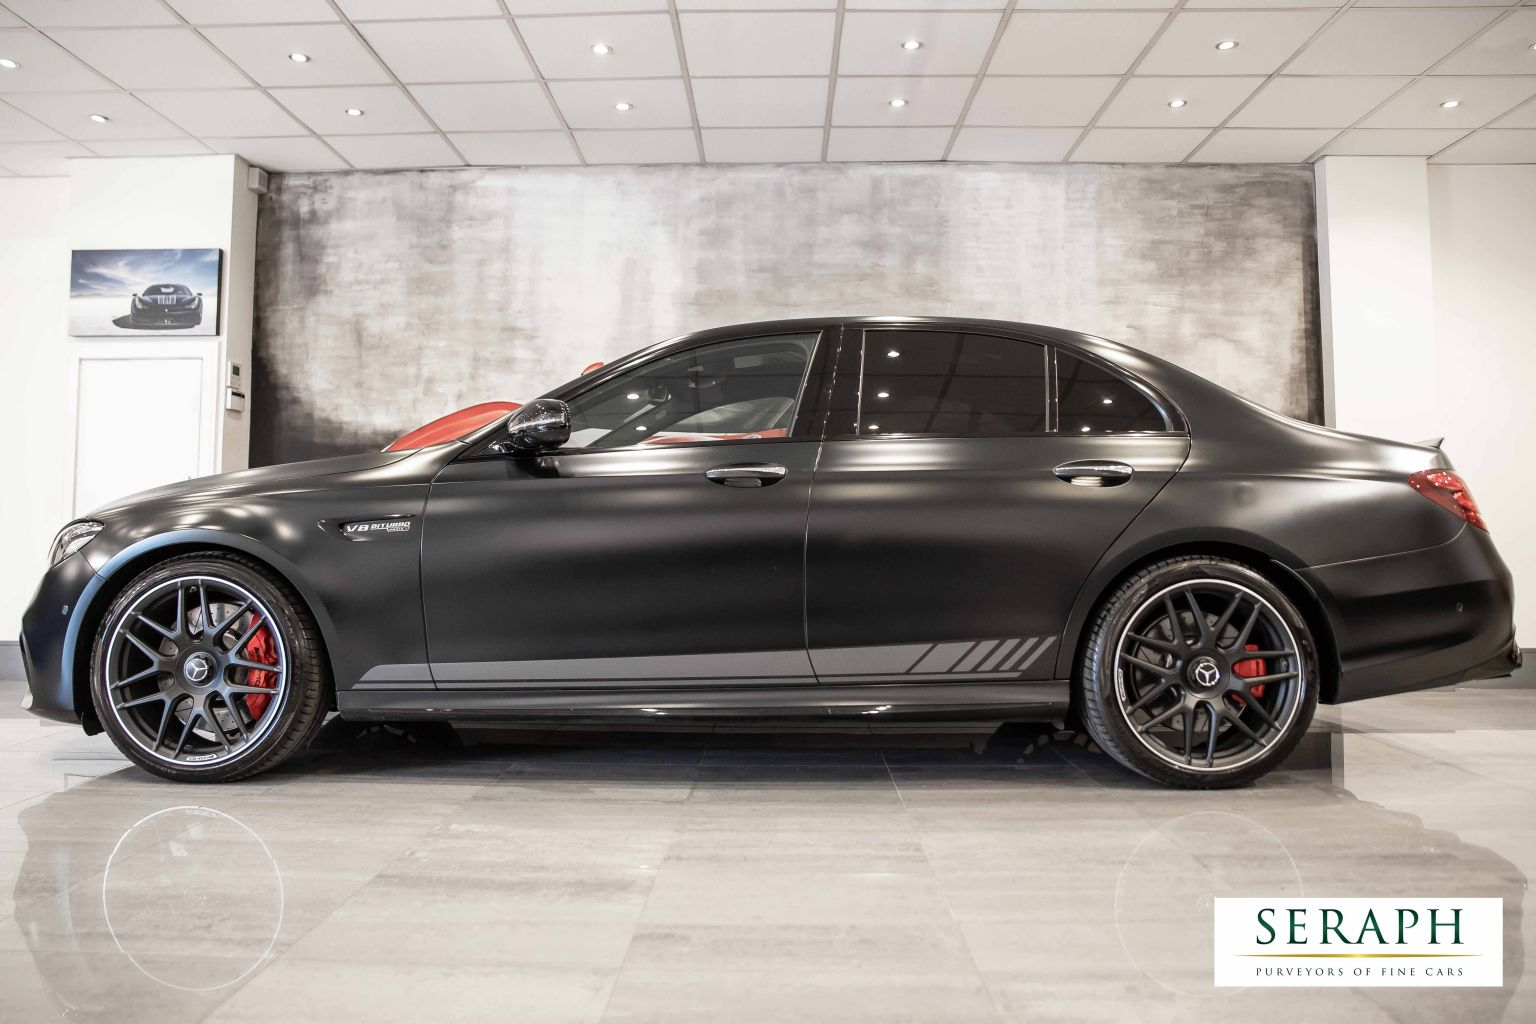 2017 17 Mercedes-Benz E Class 4.0 E63 AMG S Edition 1 - Vat Qualifying